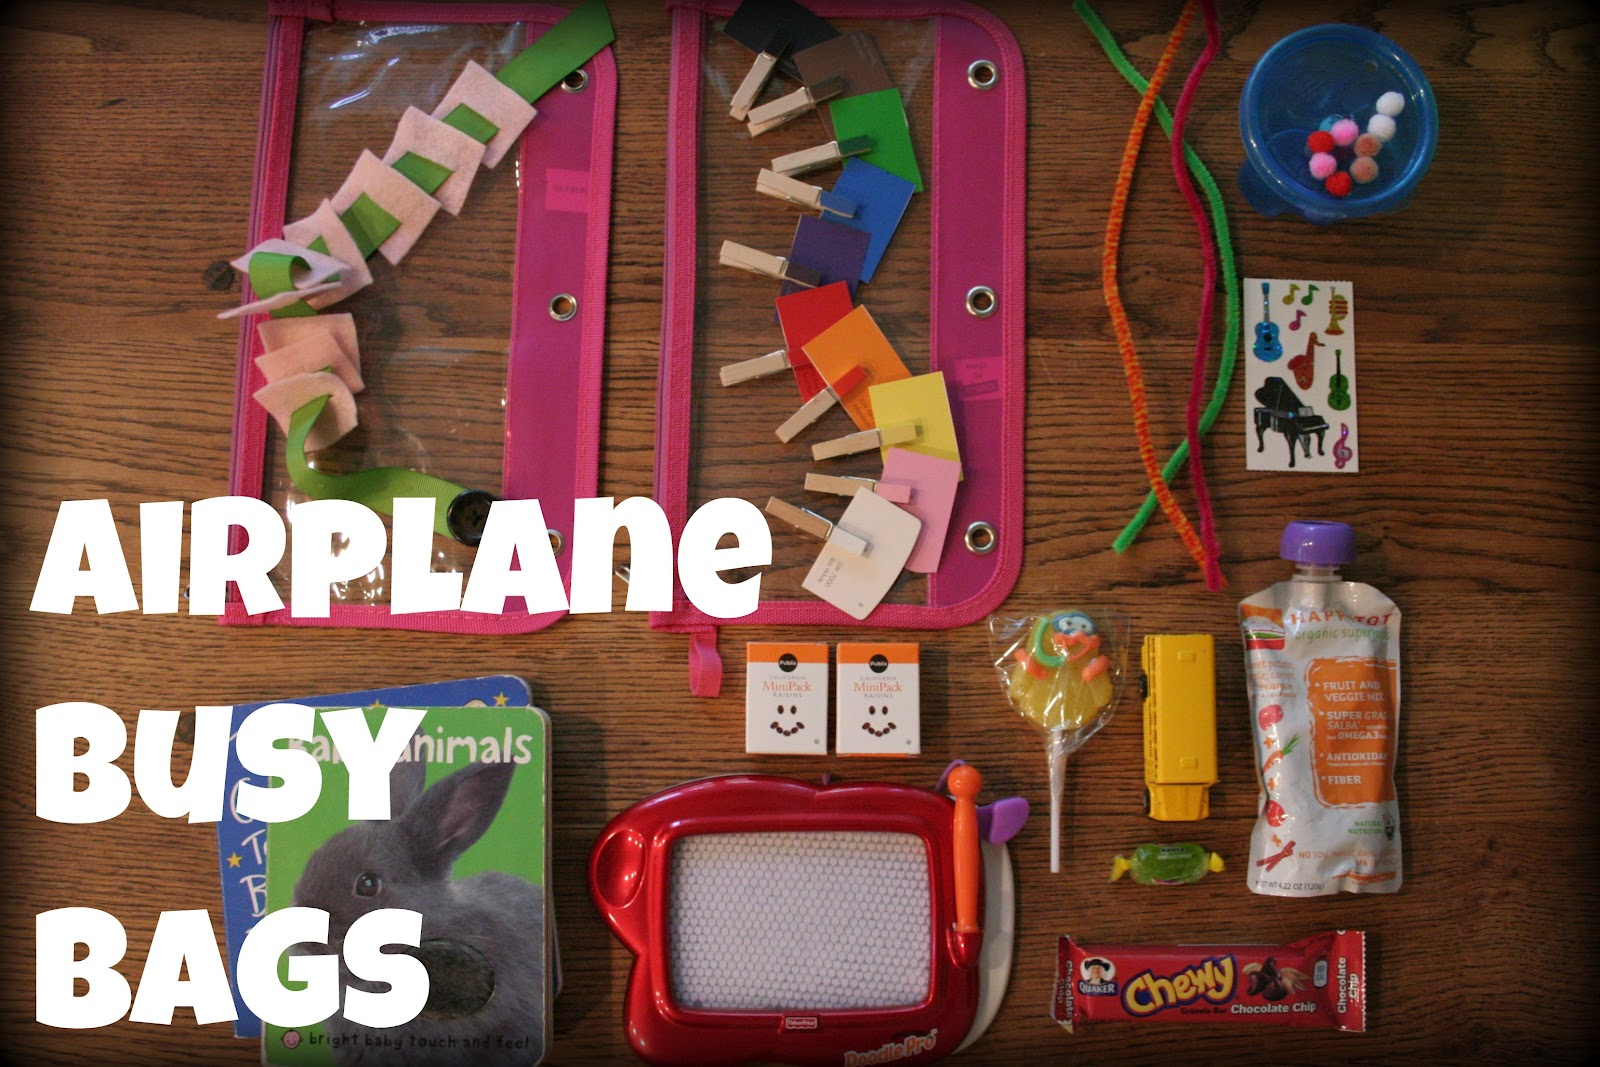 Airplane Toys For 3 Year Olds : Katie leipprandt airplane busy bags for toddlers